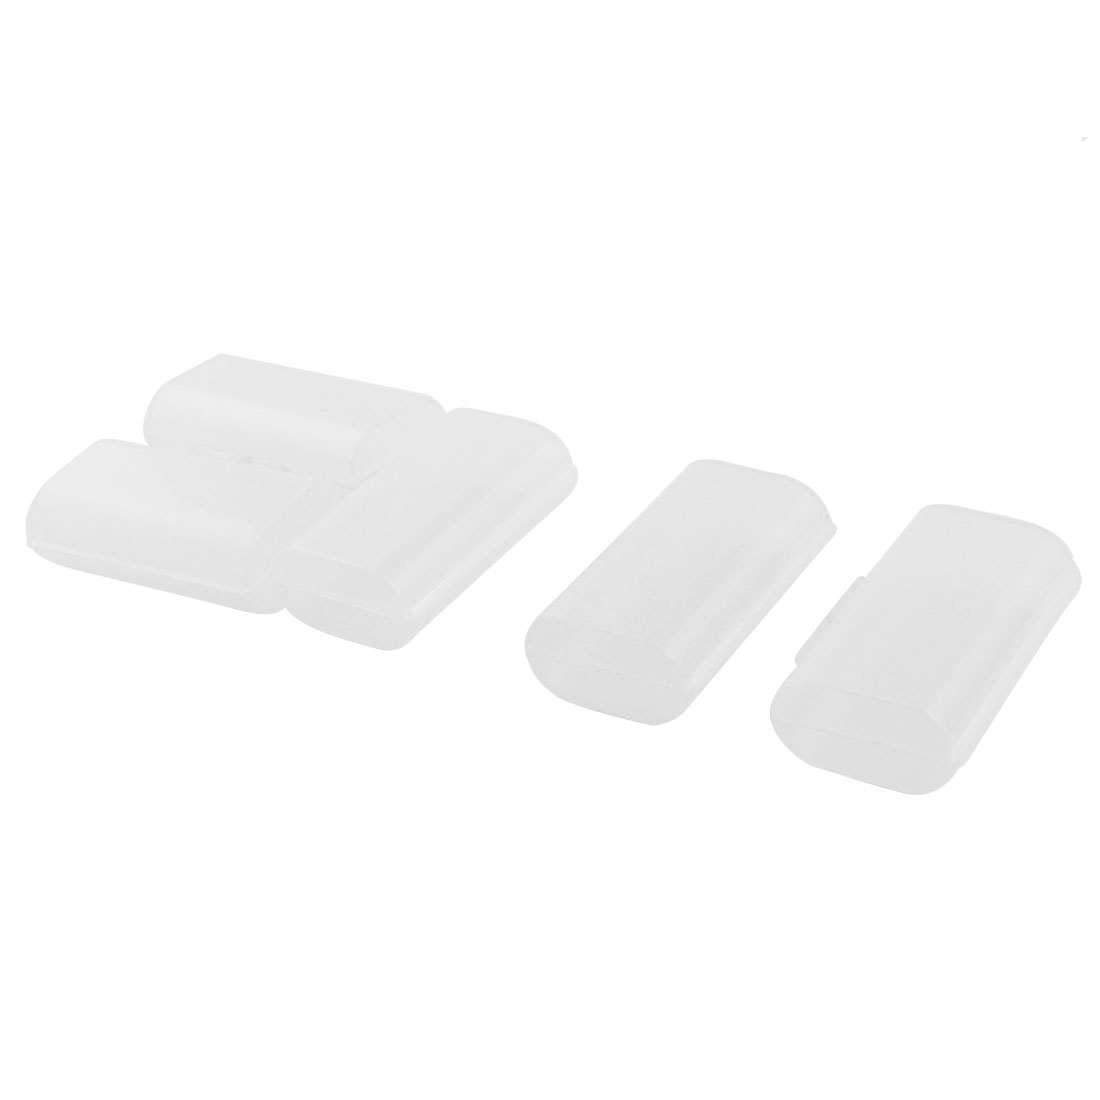 Plastic 2 Capacity AA Battery Holder Case Storage Box Clear 5 Pcs